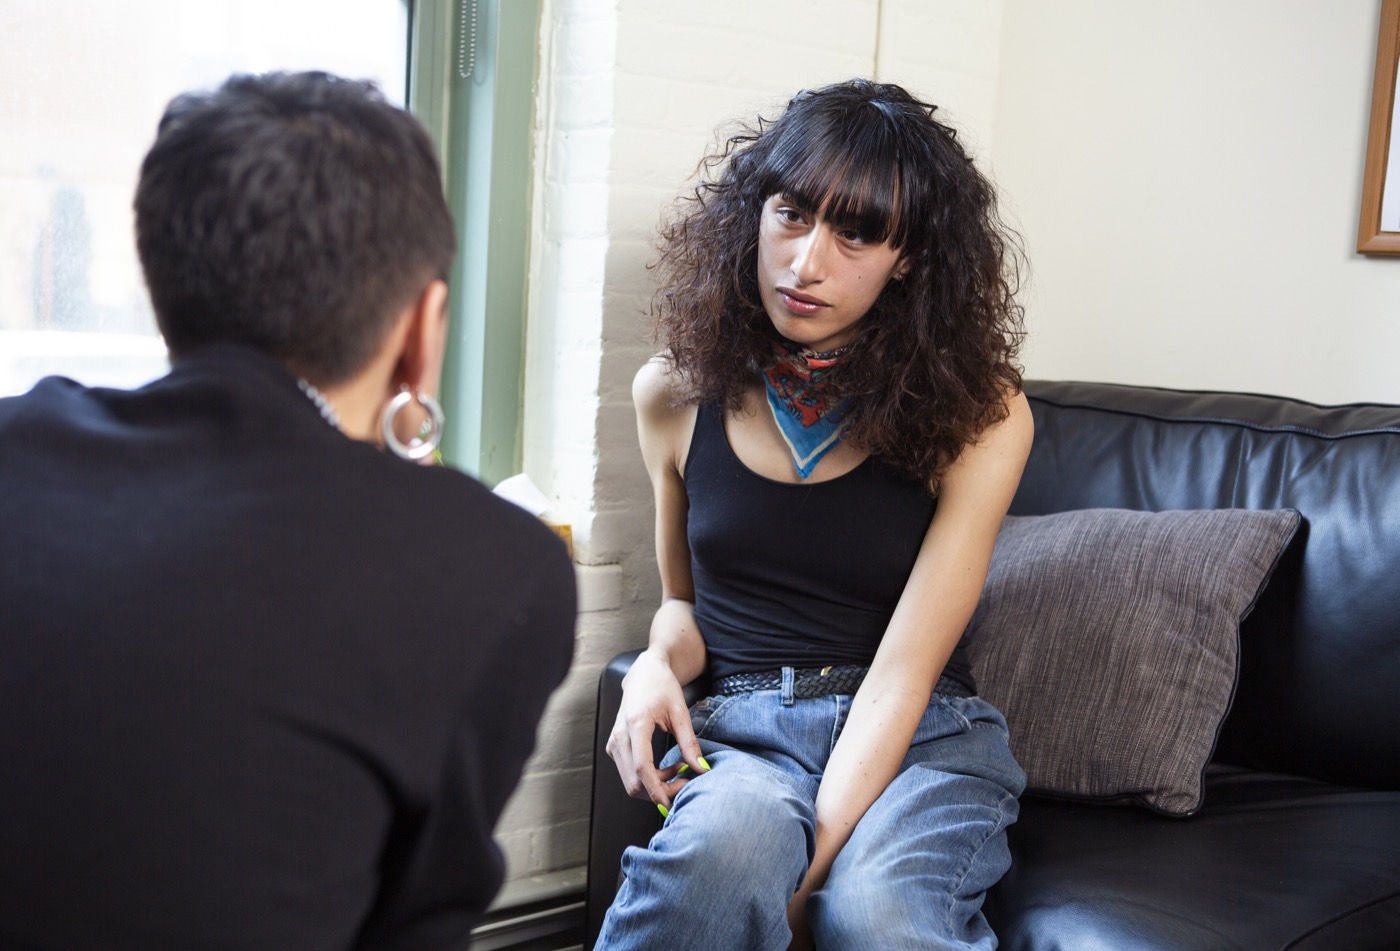 A transgender woman sitting on a therapist's couch and listening